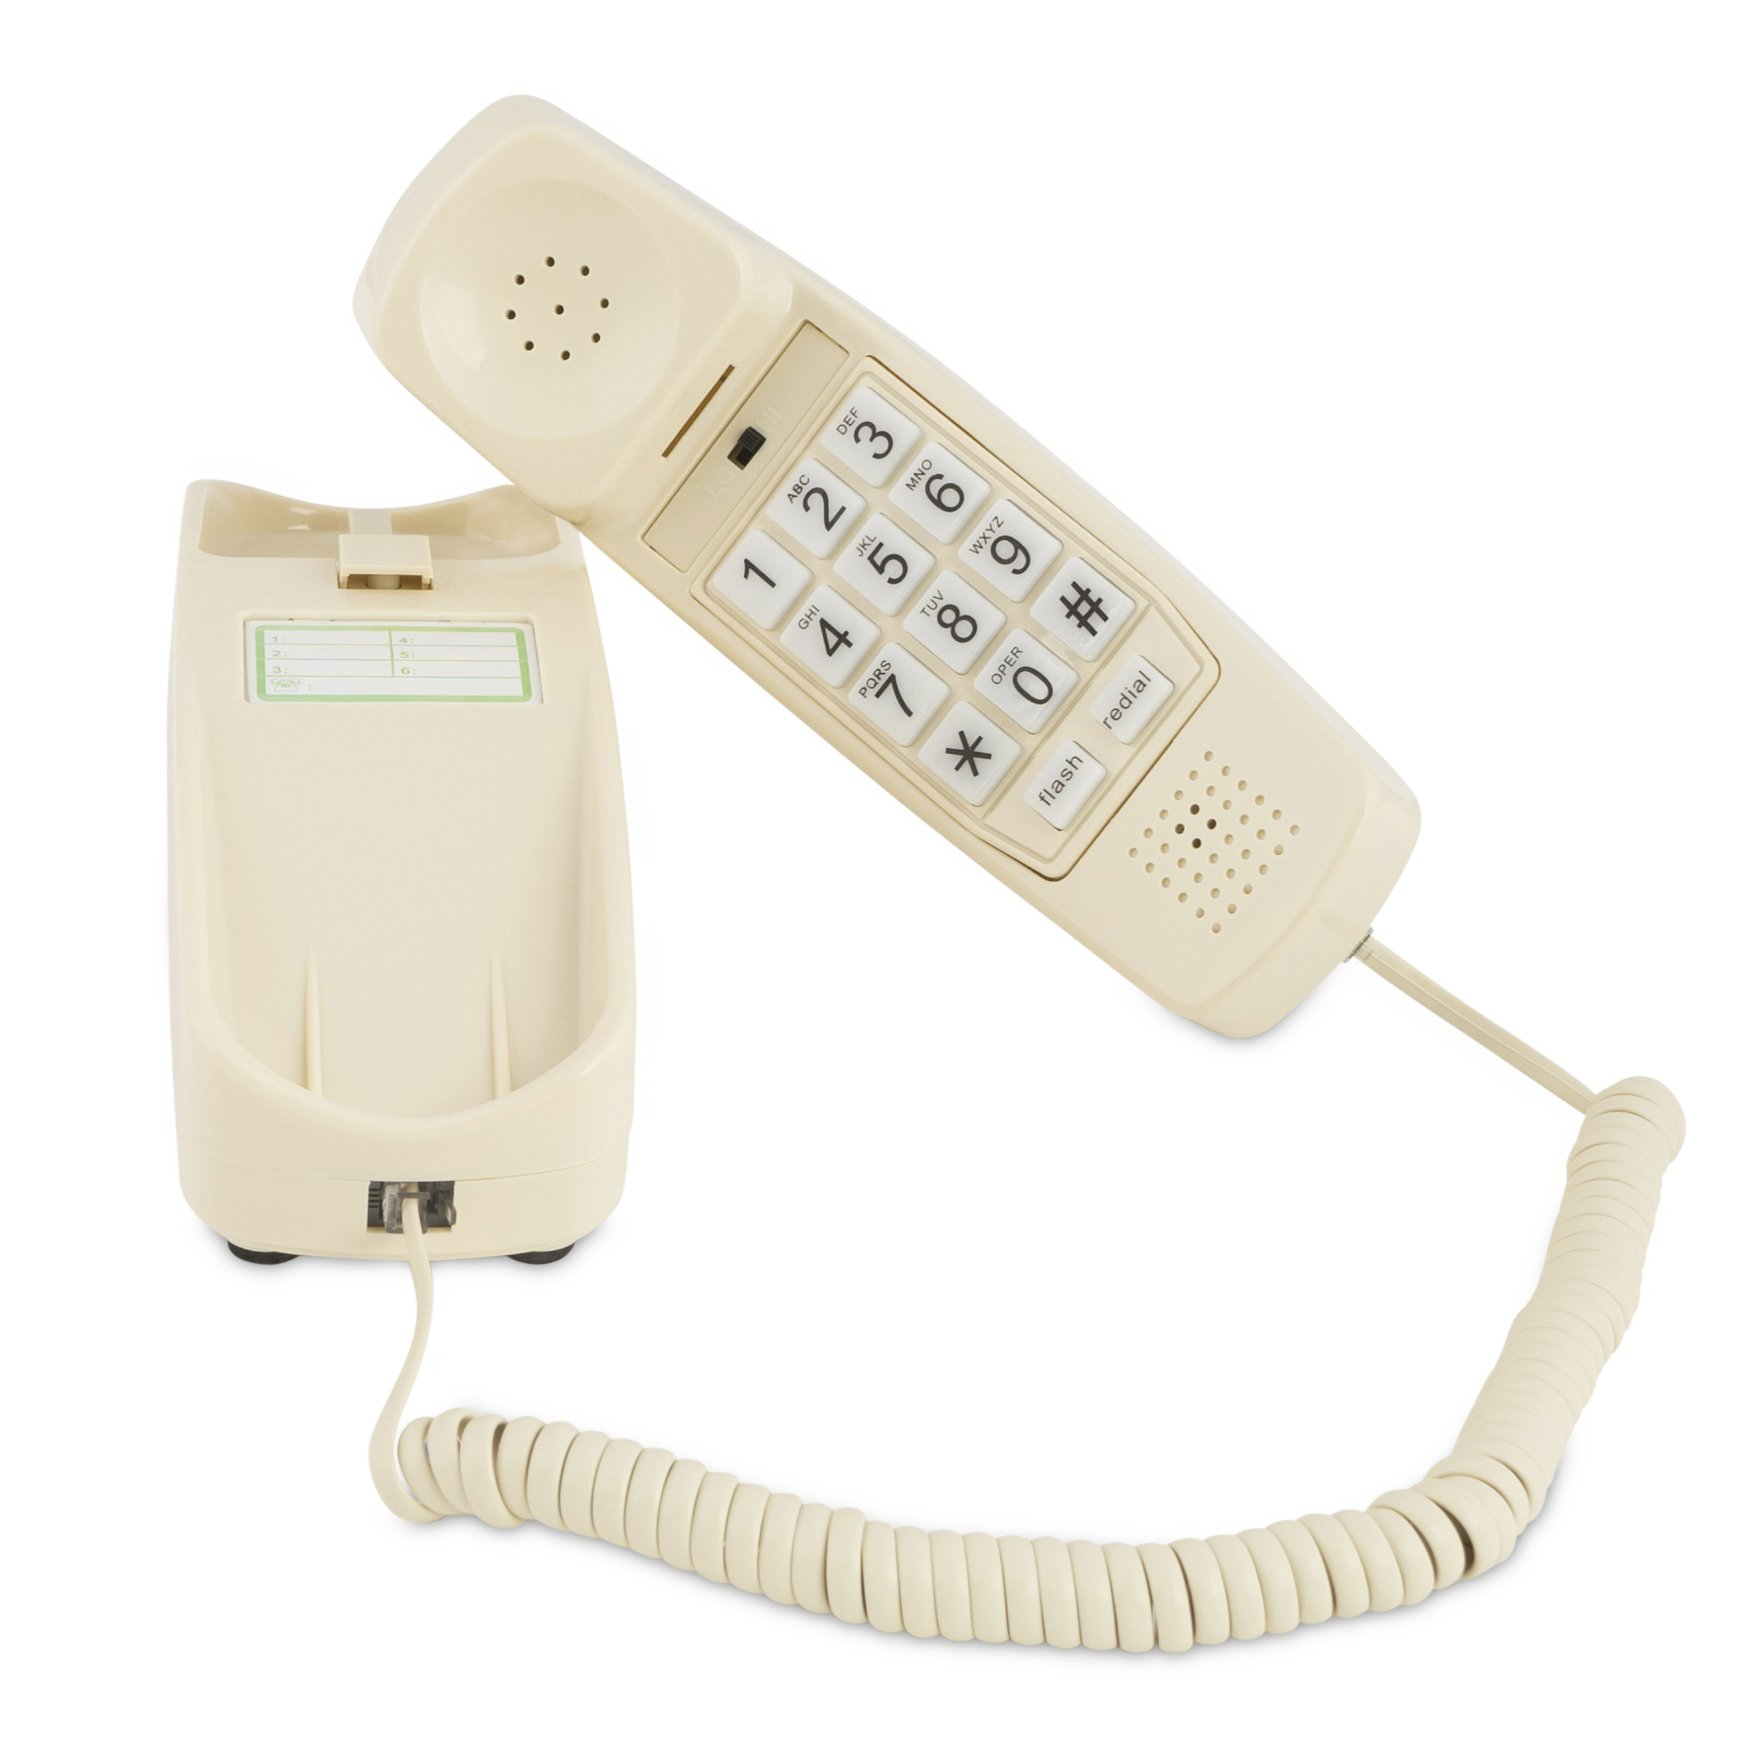 Trimline Phone - Phones For Seniors - Phone for hearing impaired - Classic Bone Ivory - Retro Novelty Telephone - An Improved Version of the Princess Phones in 1965 - Style Big Button iSoHo Phones